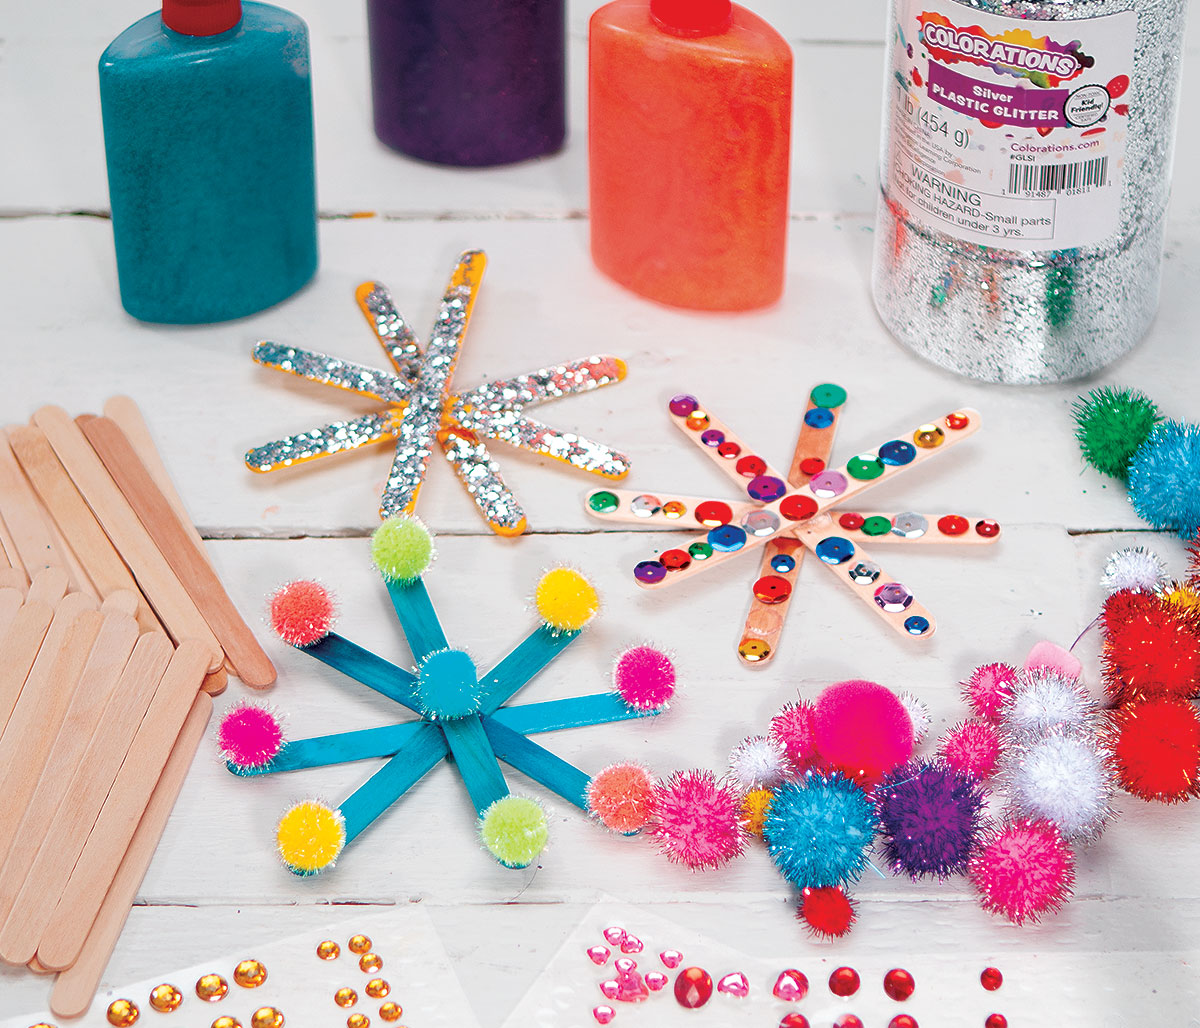 Craft Stick Snowflakes Creative Craft Activity for Winter